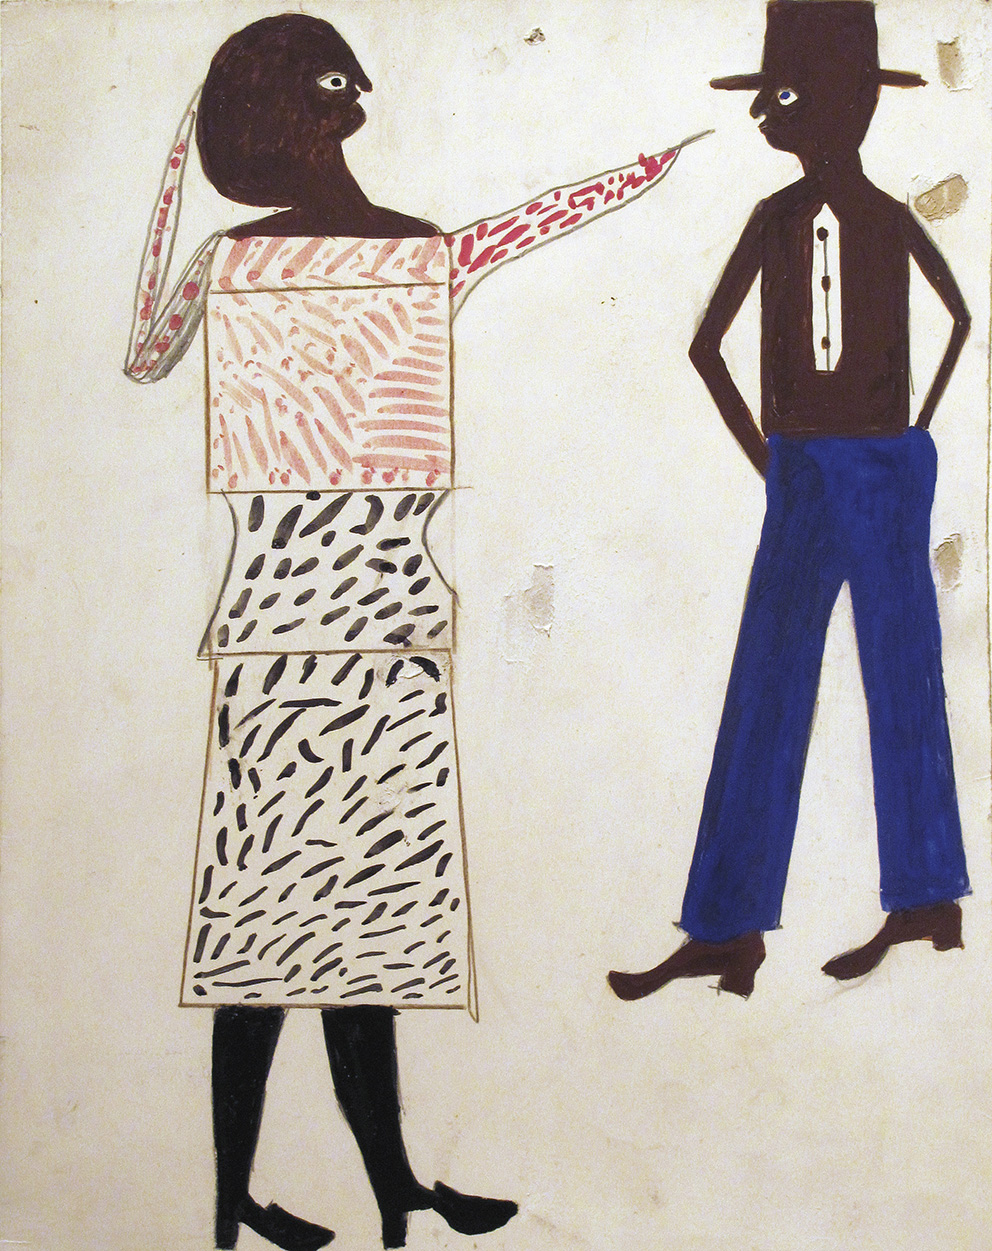 Bill Traylor (1854-1949), Untitled – Woman Pointing at Man, 1938-1943, pencil, colored pencil, watercolor on found cardboard, 35.5 x 28 cm